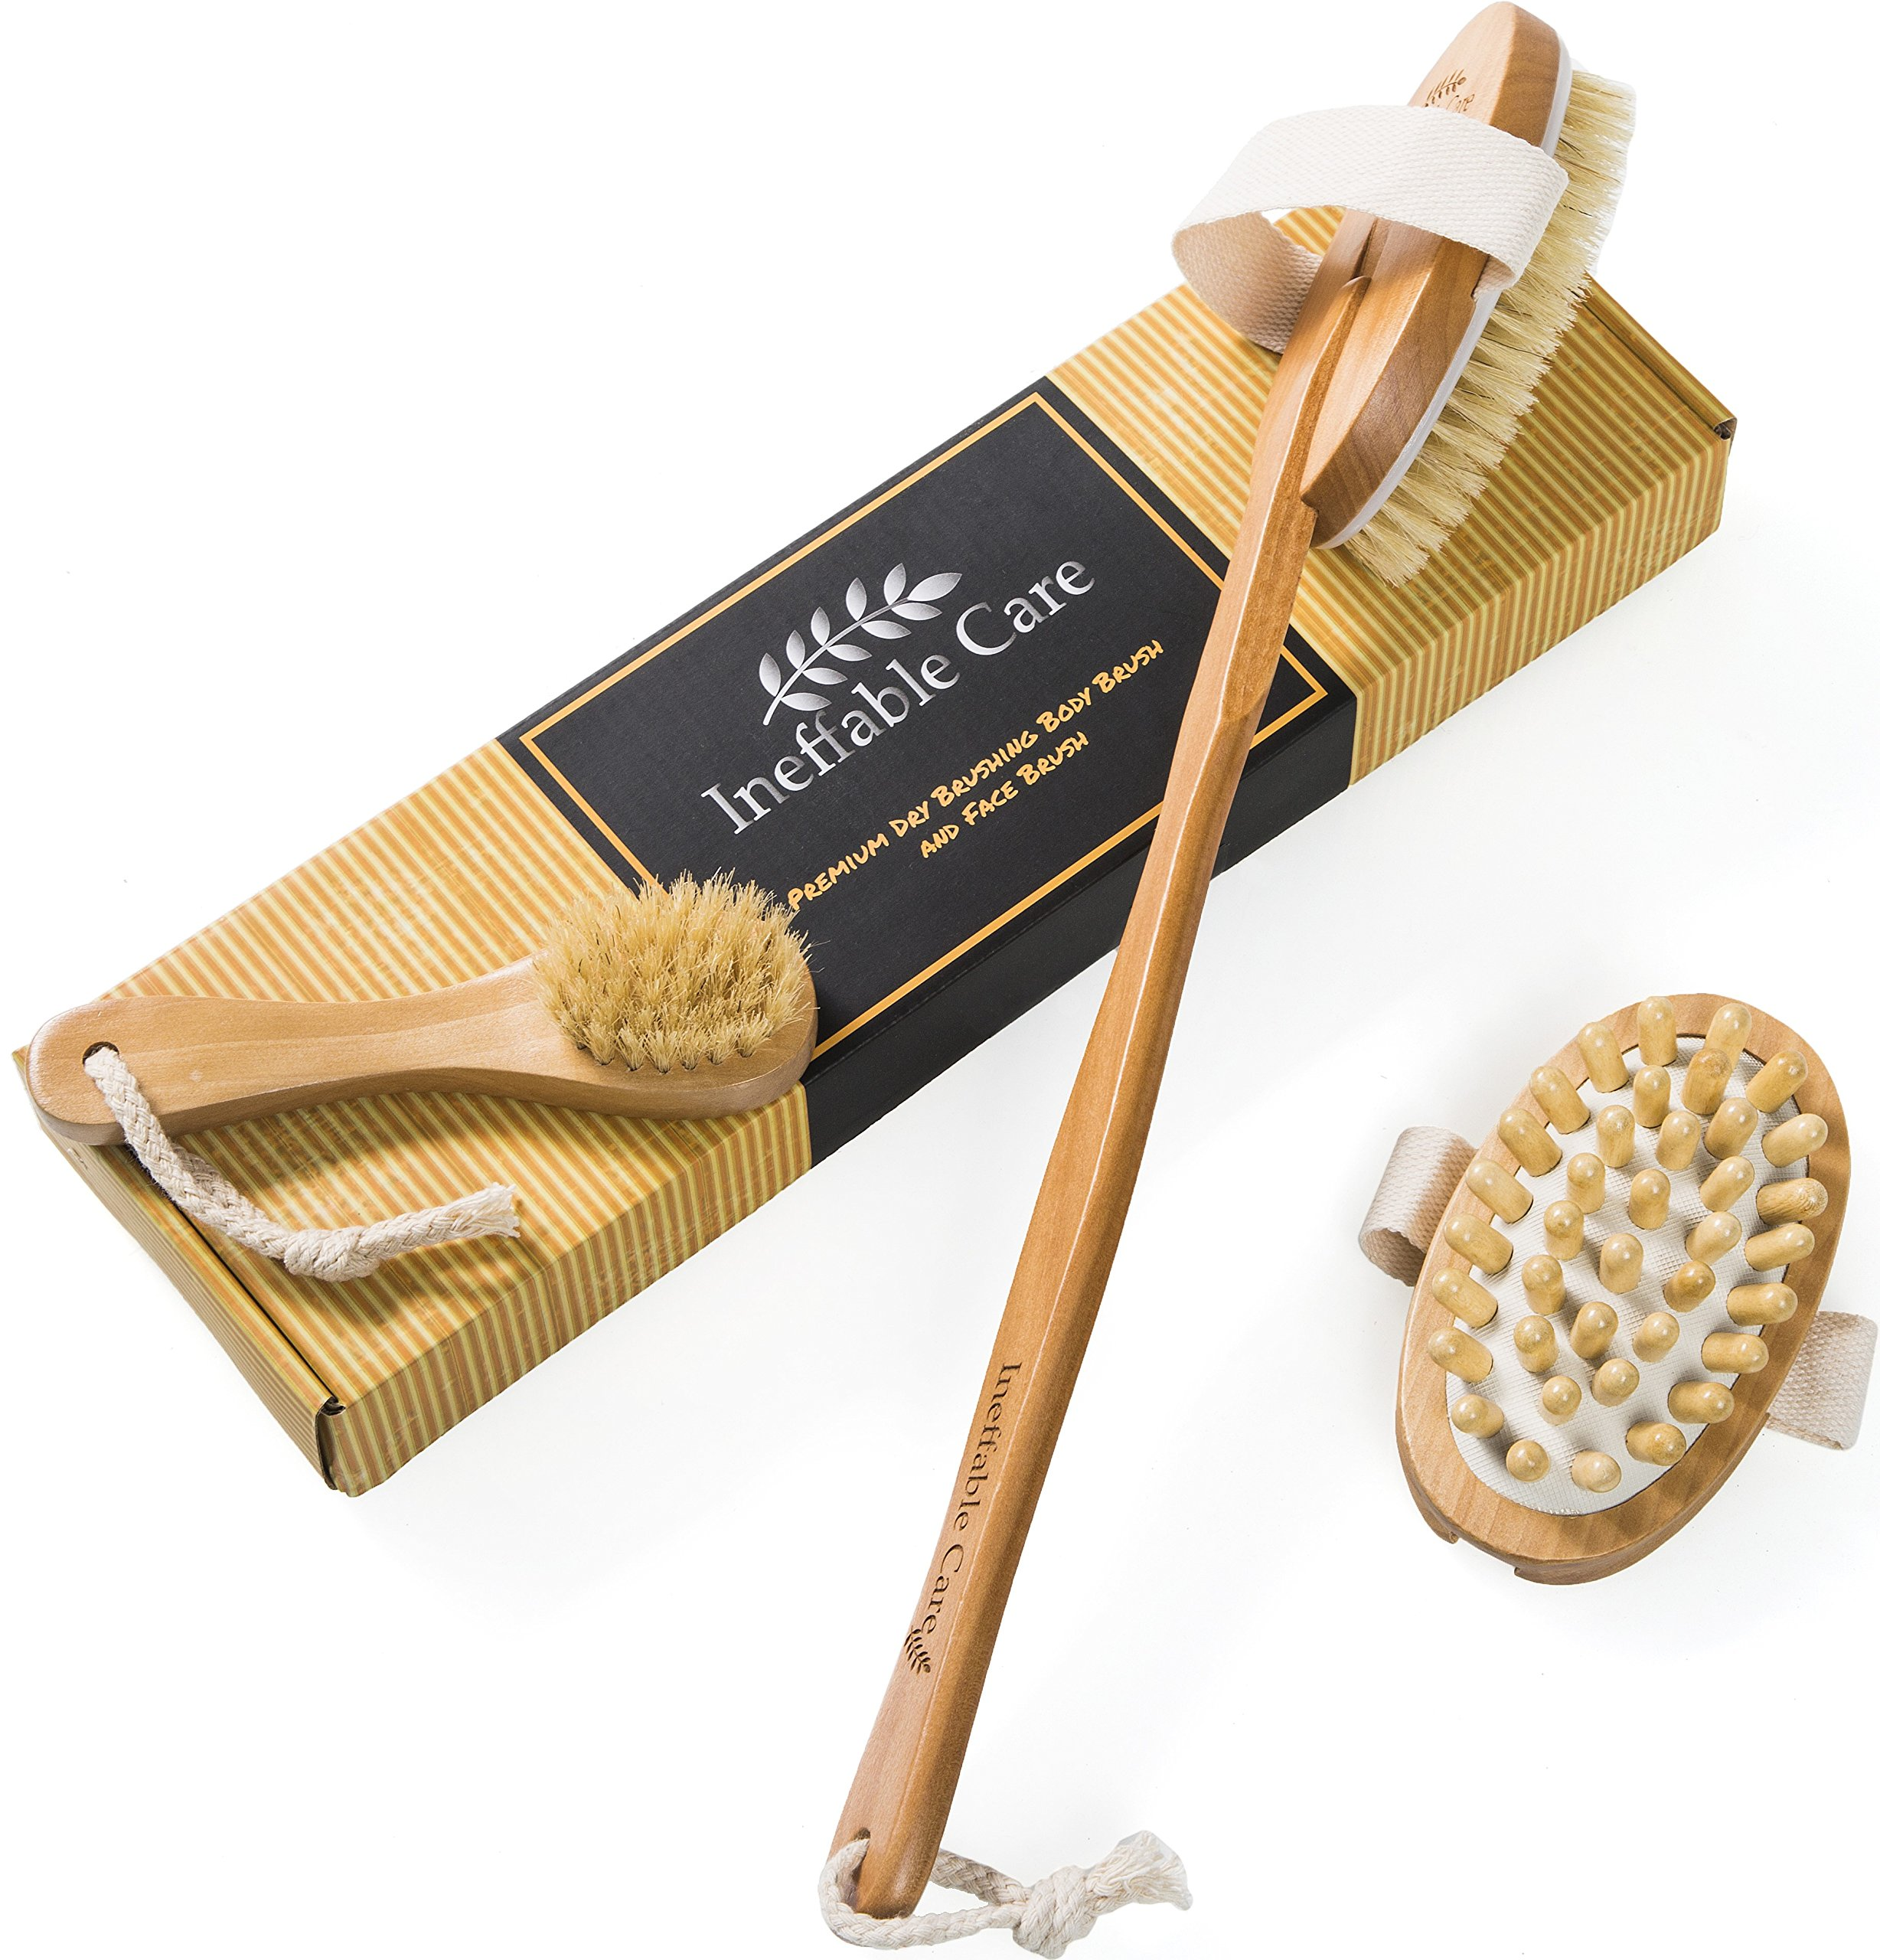 Dry Brushing Body Brush for Dry Skin Brushing & Exfoliating with 100% Natural Boar Bristles & Long Handle kit - Back Brush Scrubber, Bath & Shower Brush, Face Brush, Cellulite Massager Brush Gift Set